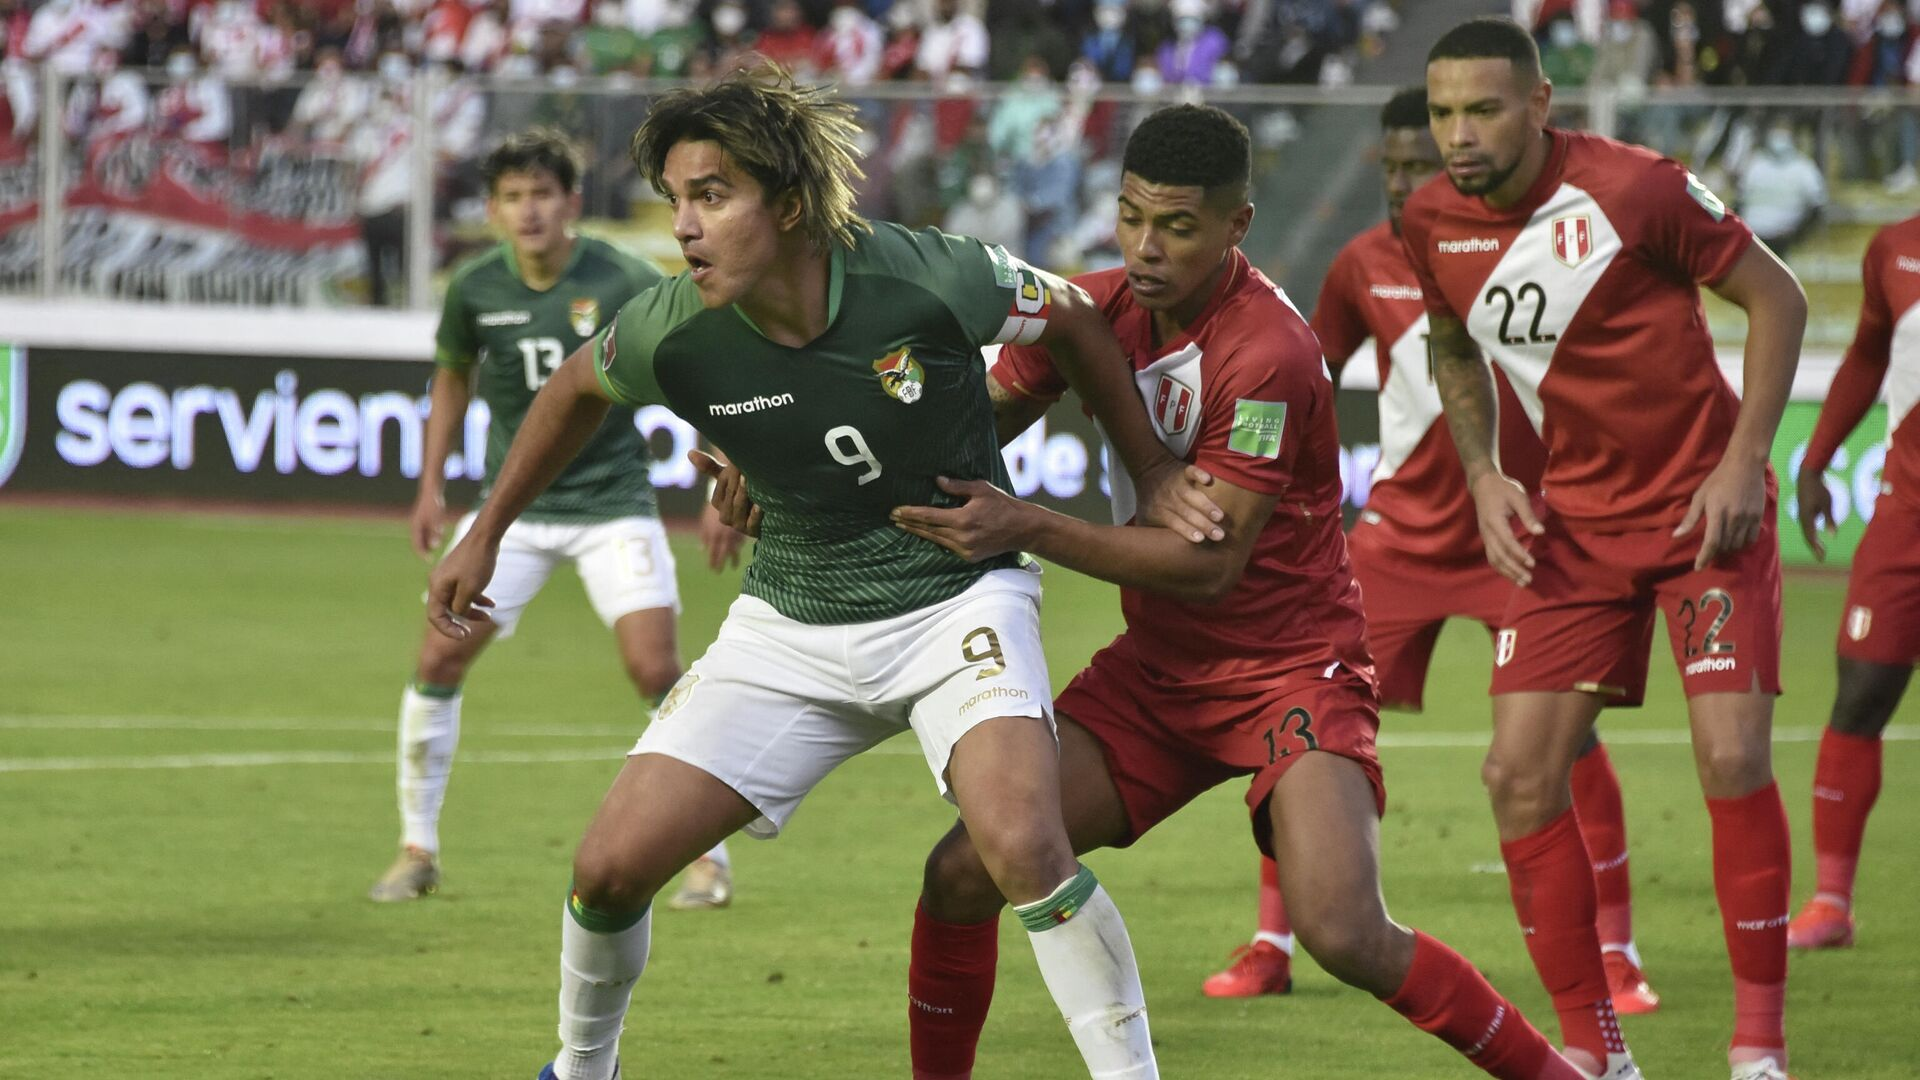 Bolivia's Marcelo Martins (L) and Peru's Wilder Cartagena (C) vie for the ball during their South American qualification football match for the FIFA World Cup Qatar 2022 at the Hernando Siles stadium in La Paz, on October 10, 2021. (Photo by AIZAR RALDES / POOL / AFP) - РИА Новости, 1920, 11.10.2021